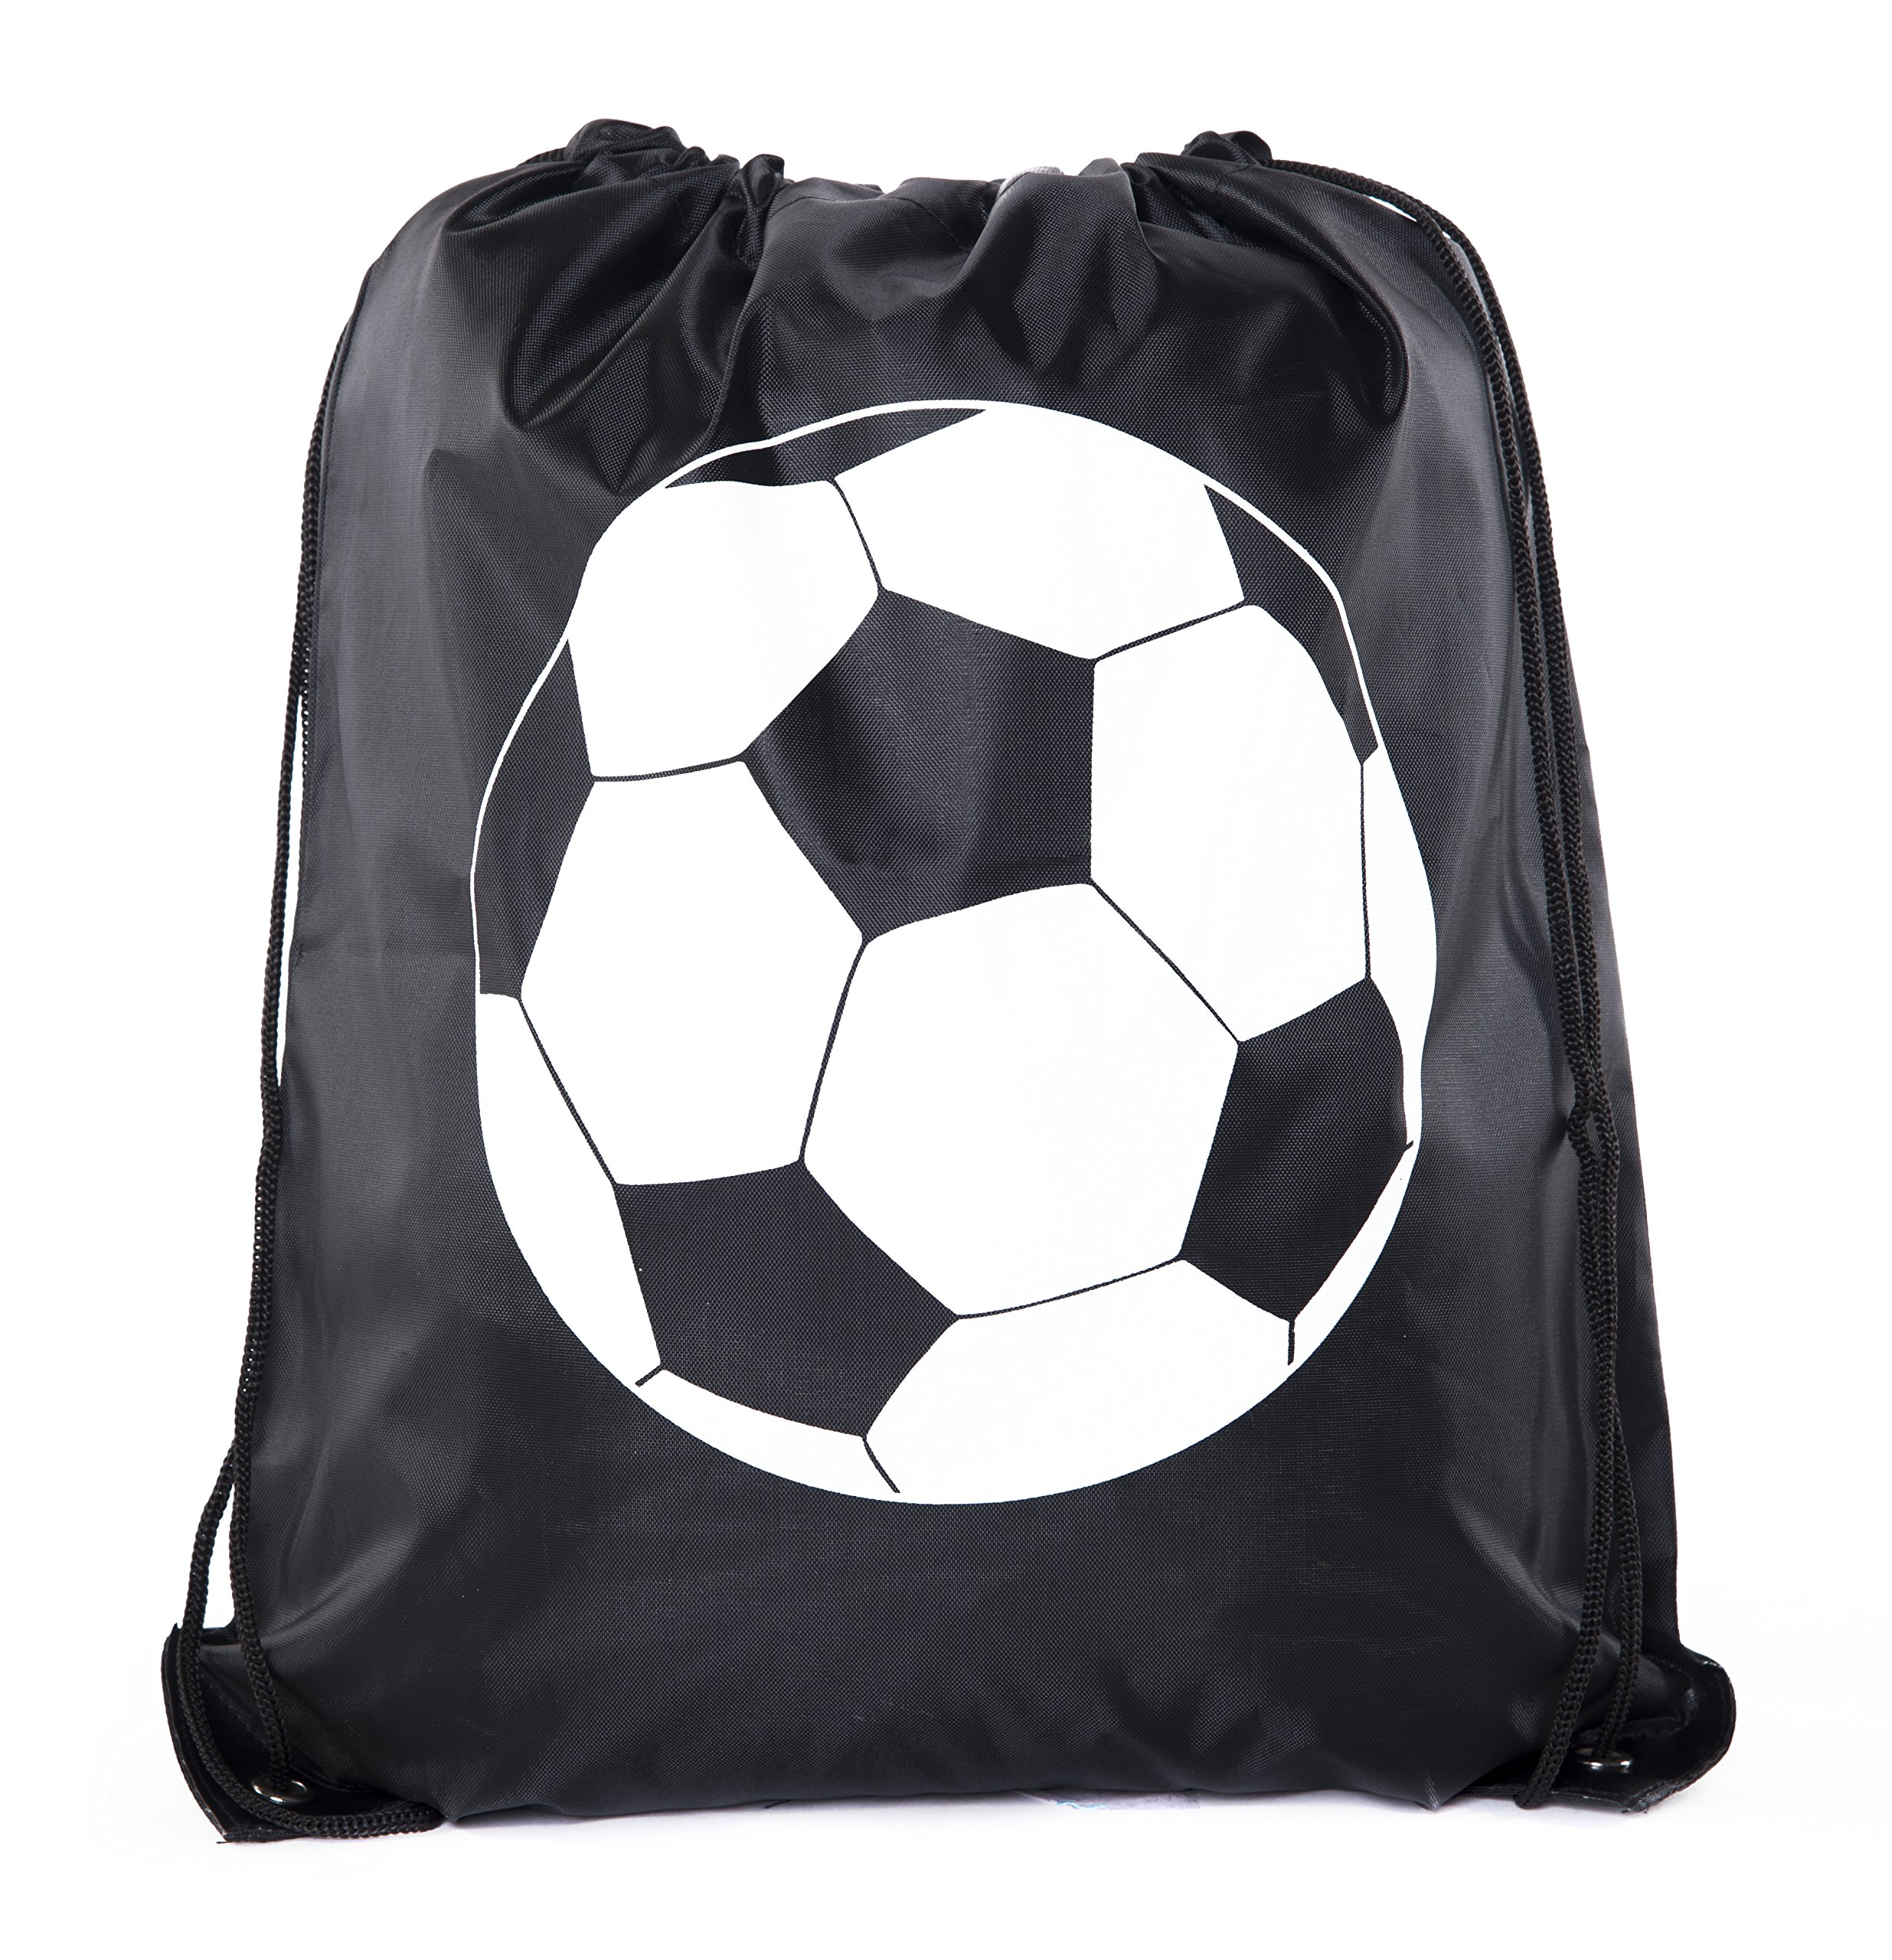 Goodie Bags for Kids | Drawstring Gift Bags with Logo for Bdays, Parties + More - 3PK Black CA2500PTY Soccer